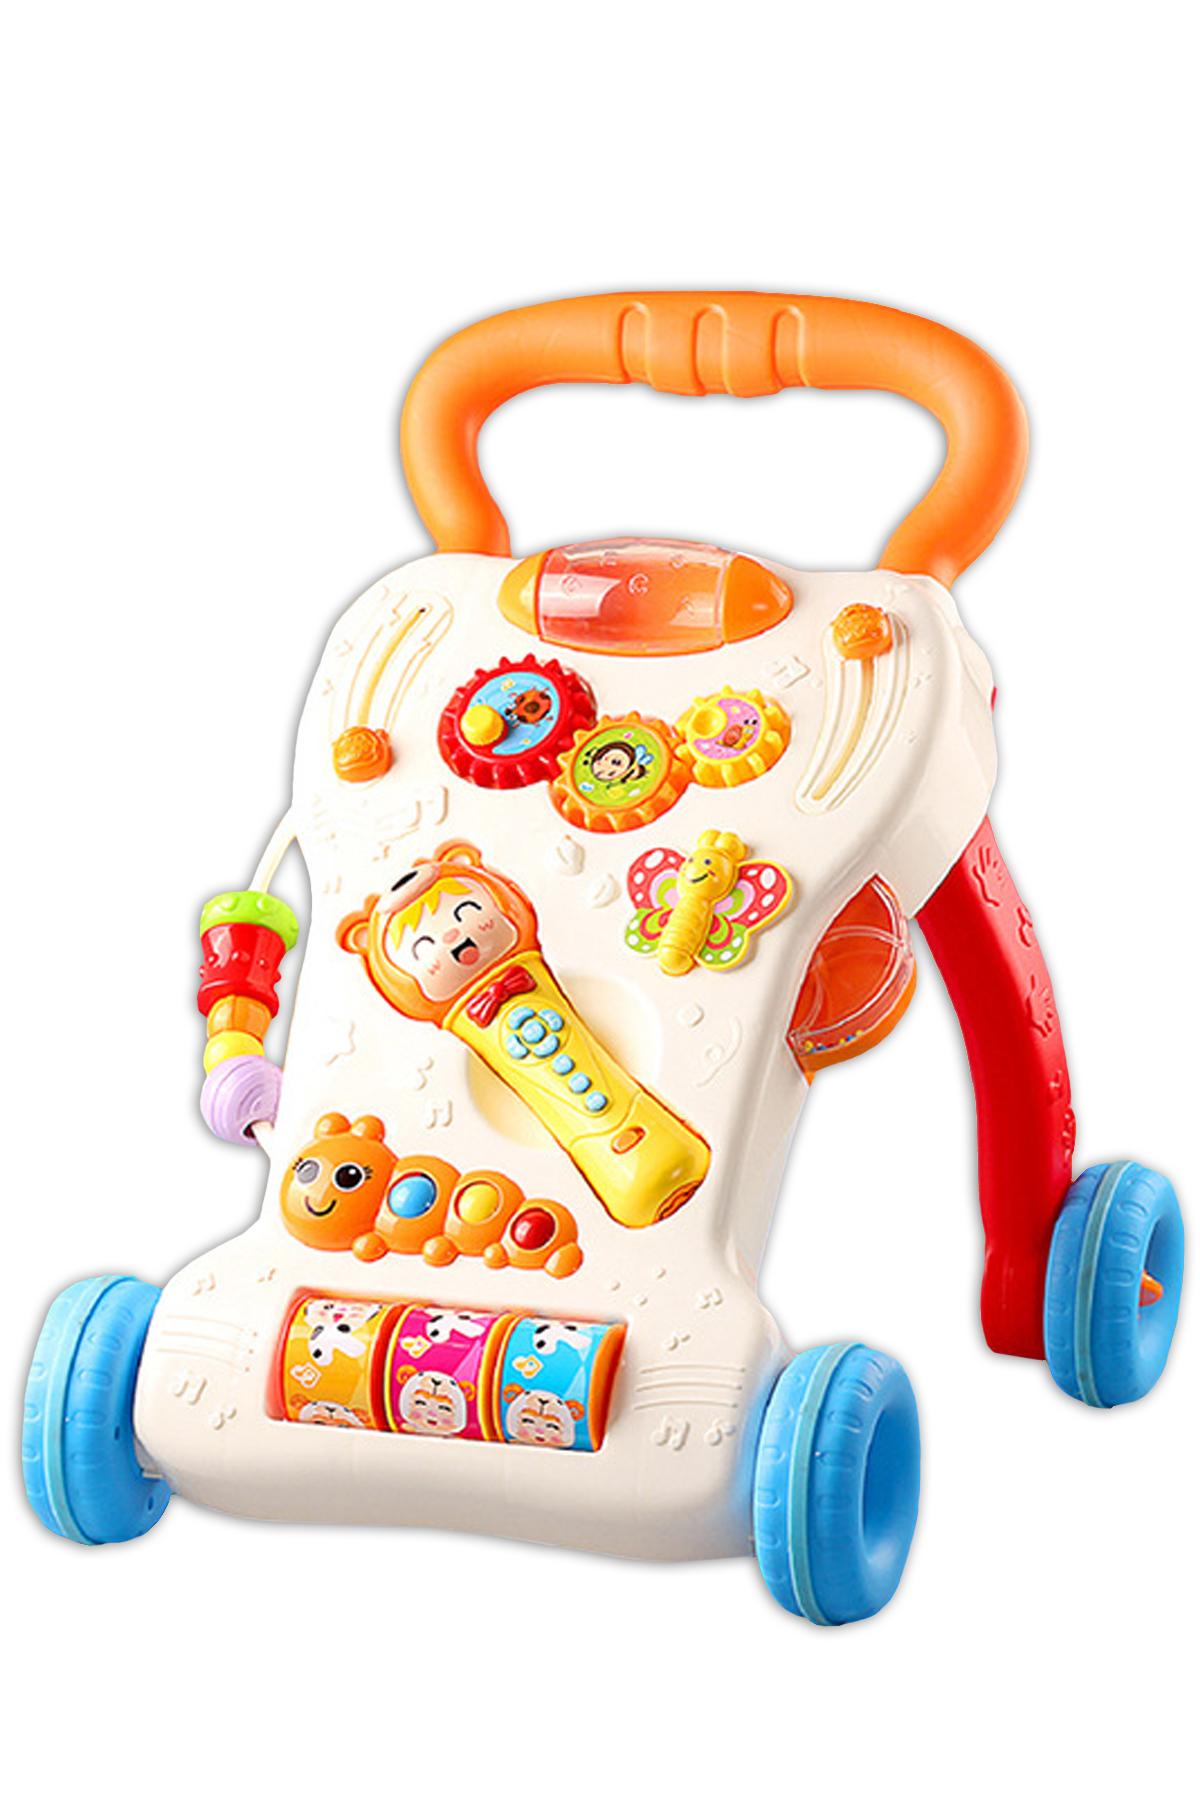 YOULEEN Baby Toddler Musical Push end 10 24 2019 11 13 PM